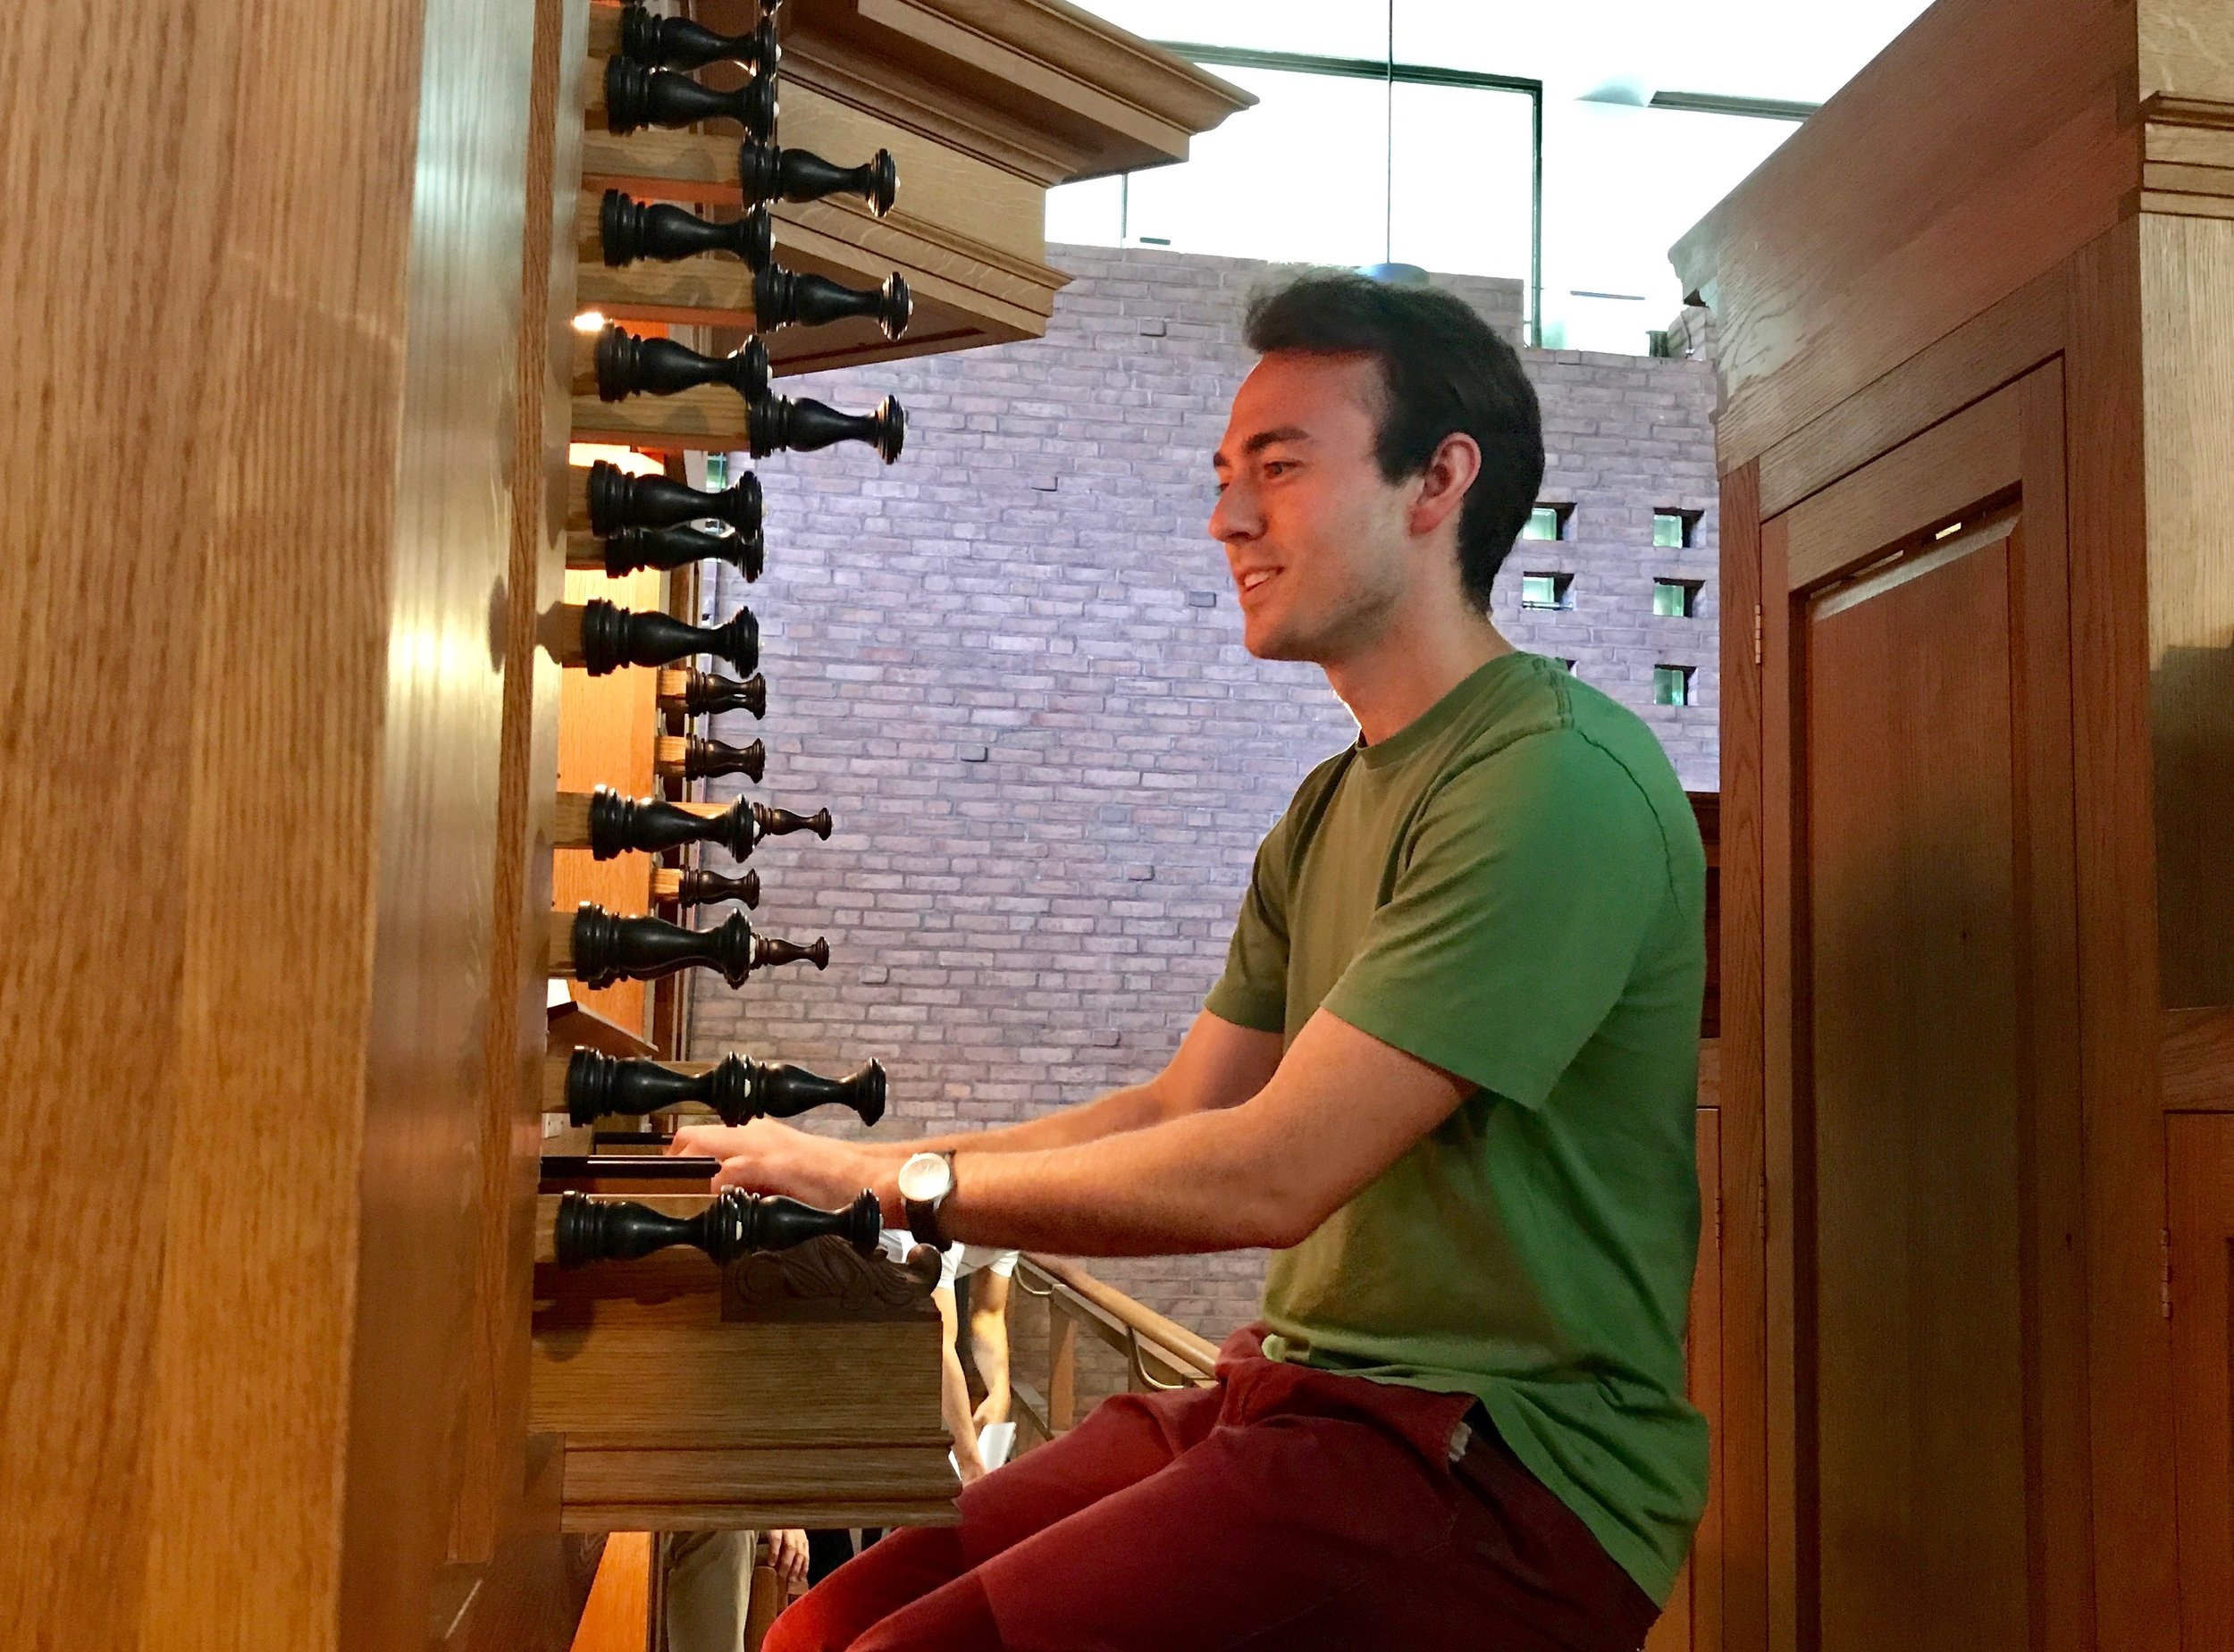 Organist Kade Phillips plays at First Lutheran Church.